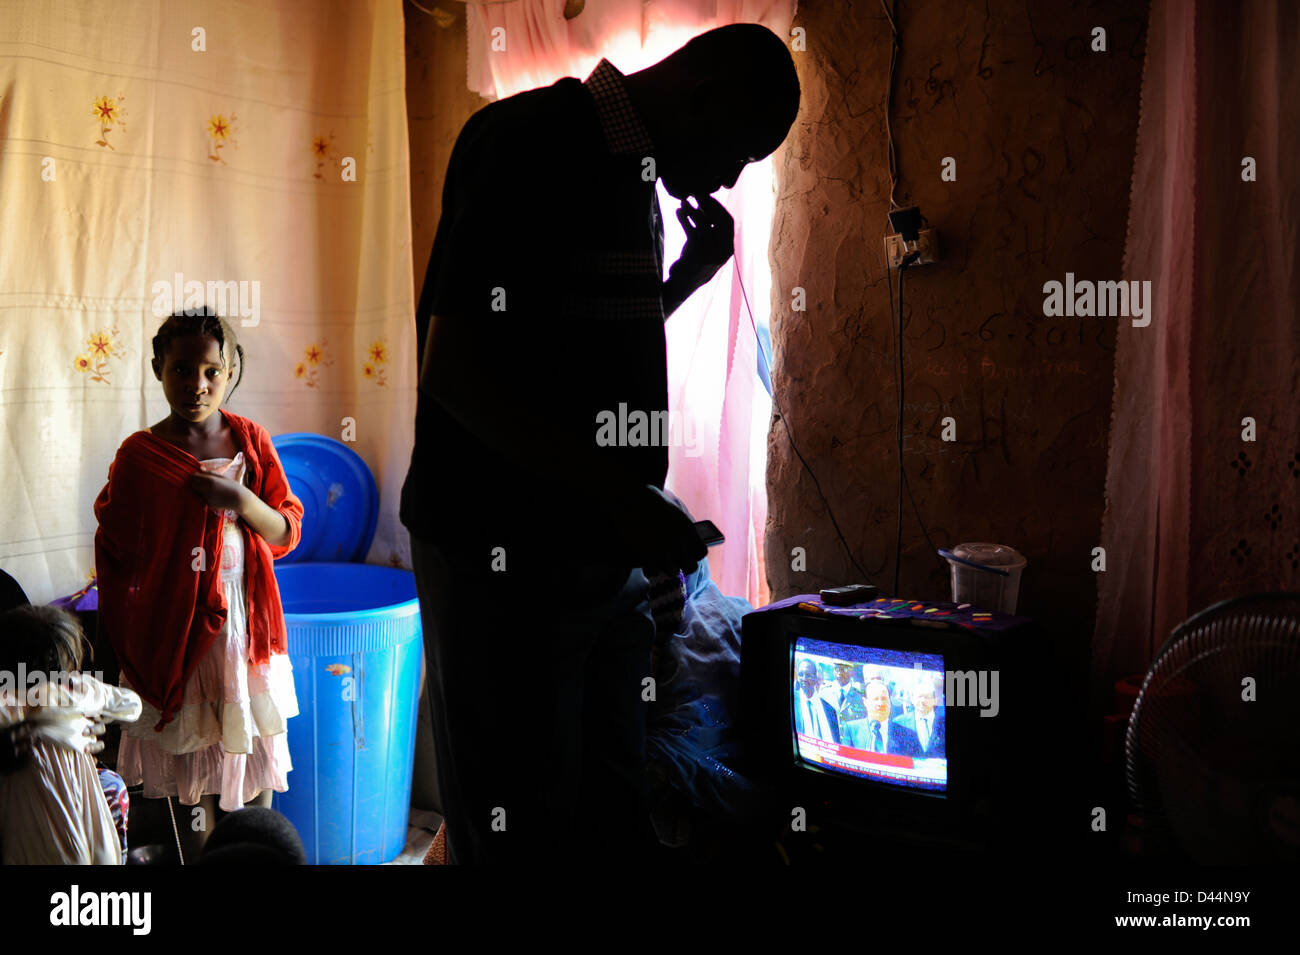 NIGER Niamey, malian refugees watching TV with news with François Hollande and the war in Mali - Stock Image